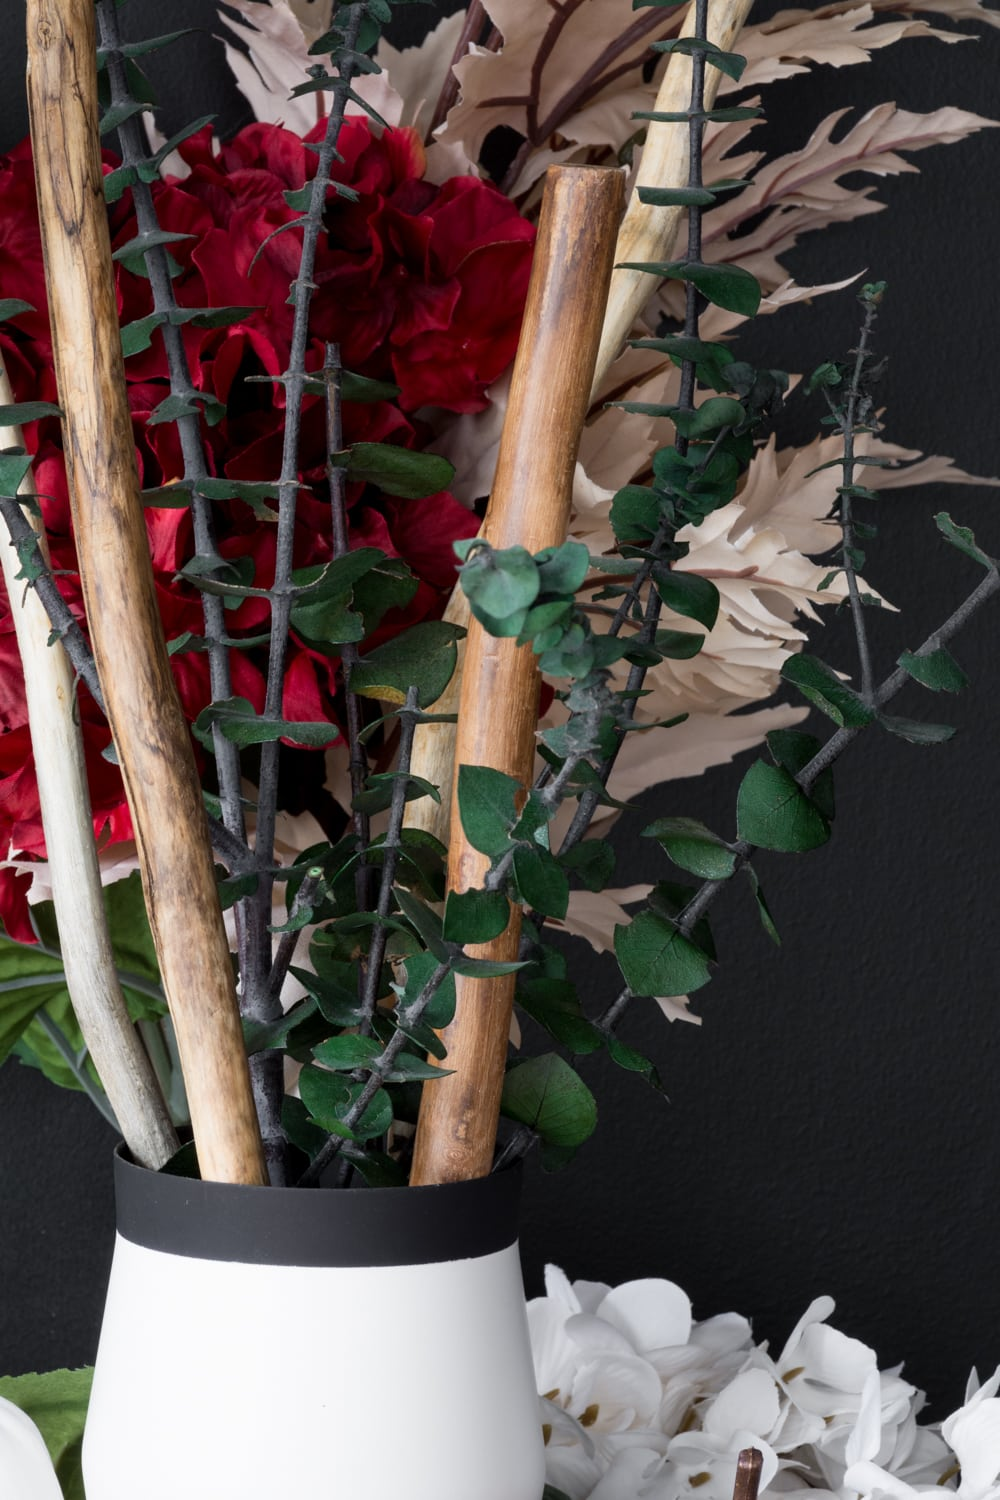 How to Strip and Finish Branches for Decor